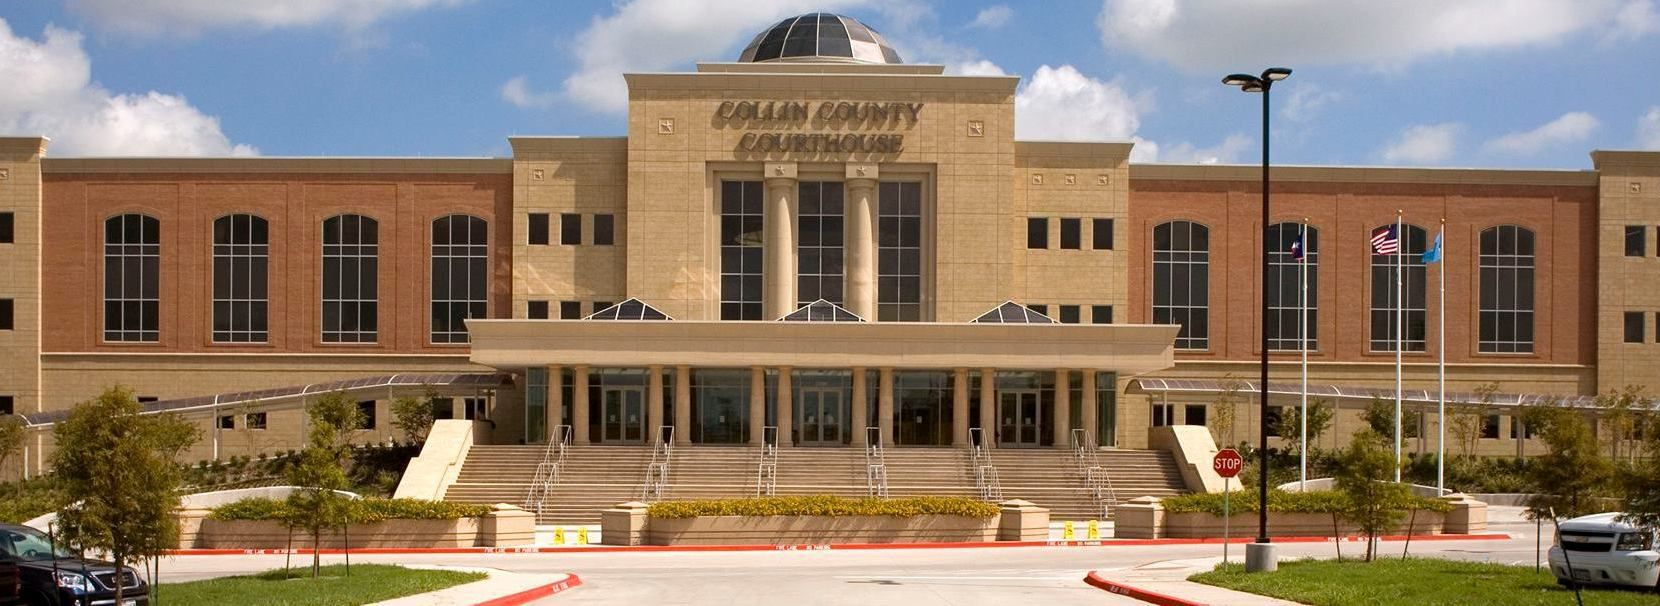 The murder trial continues at the Collin County Courthouse this week.